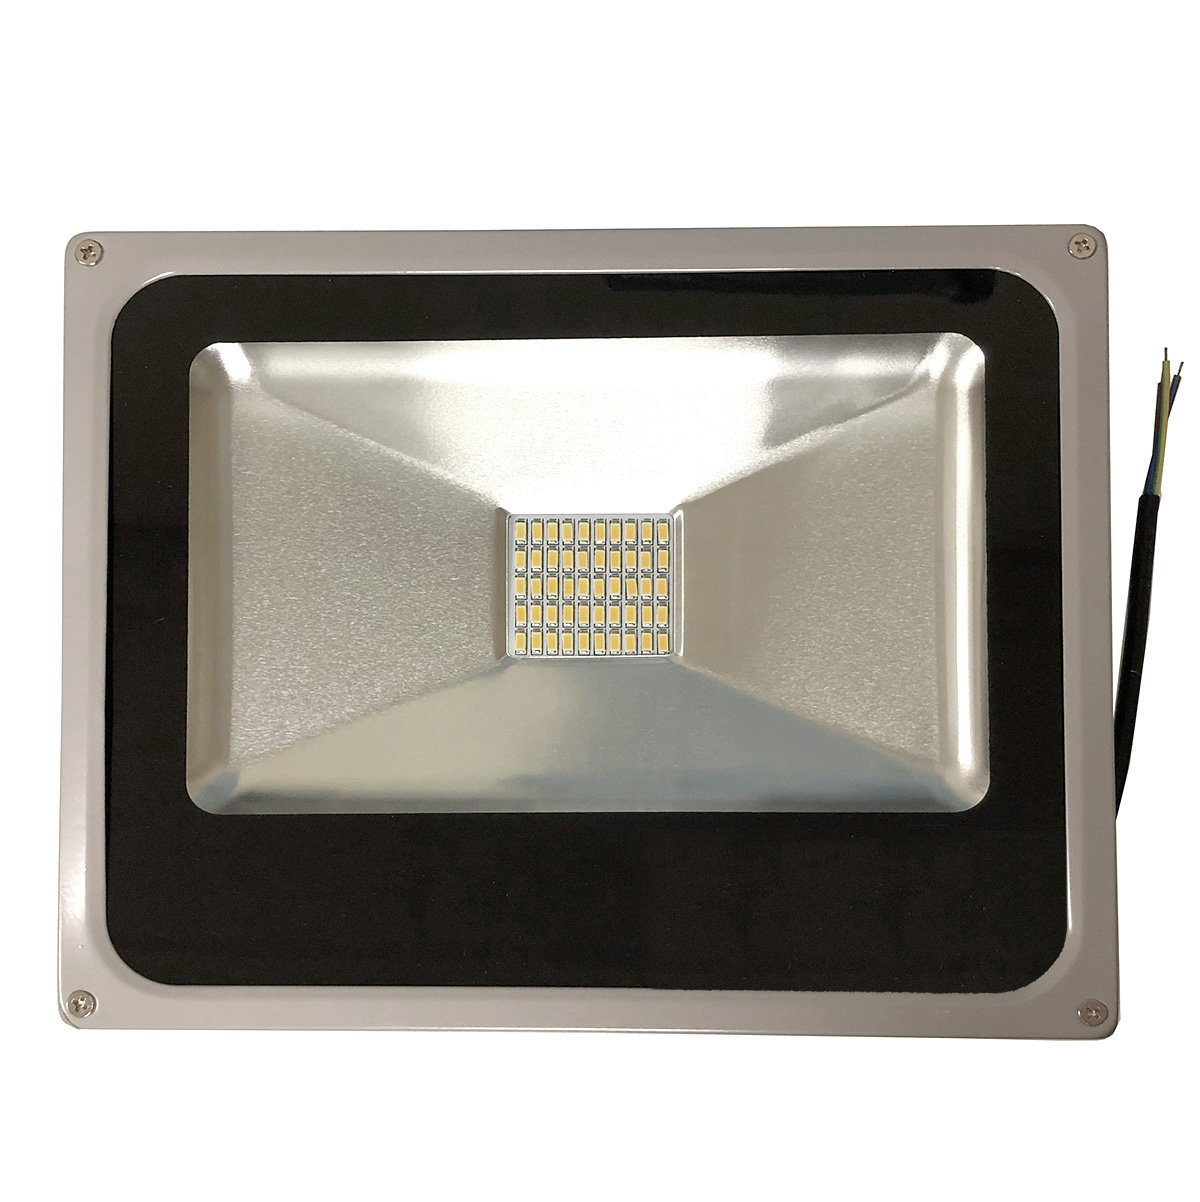 Isweet 50W LED Flood Light, 4800 Lumen, Warm White, 3000K, Waterproof,  IP65, 110 Volt (50 Watt) - - Amazon.com